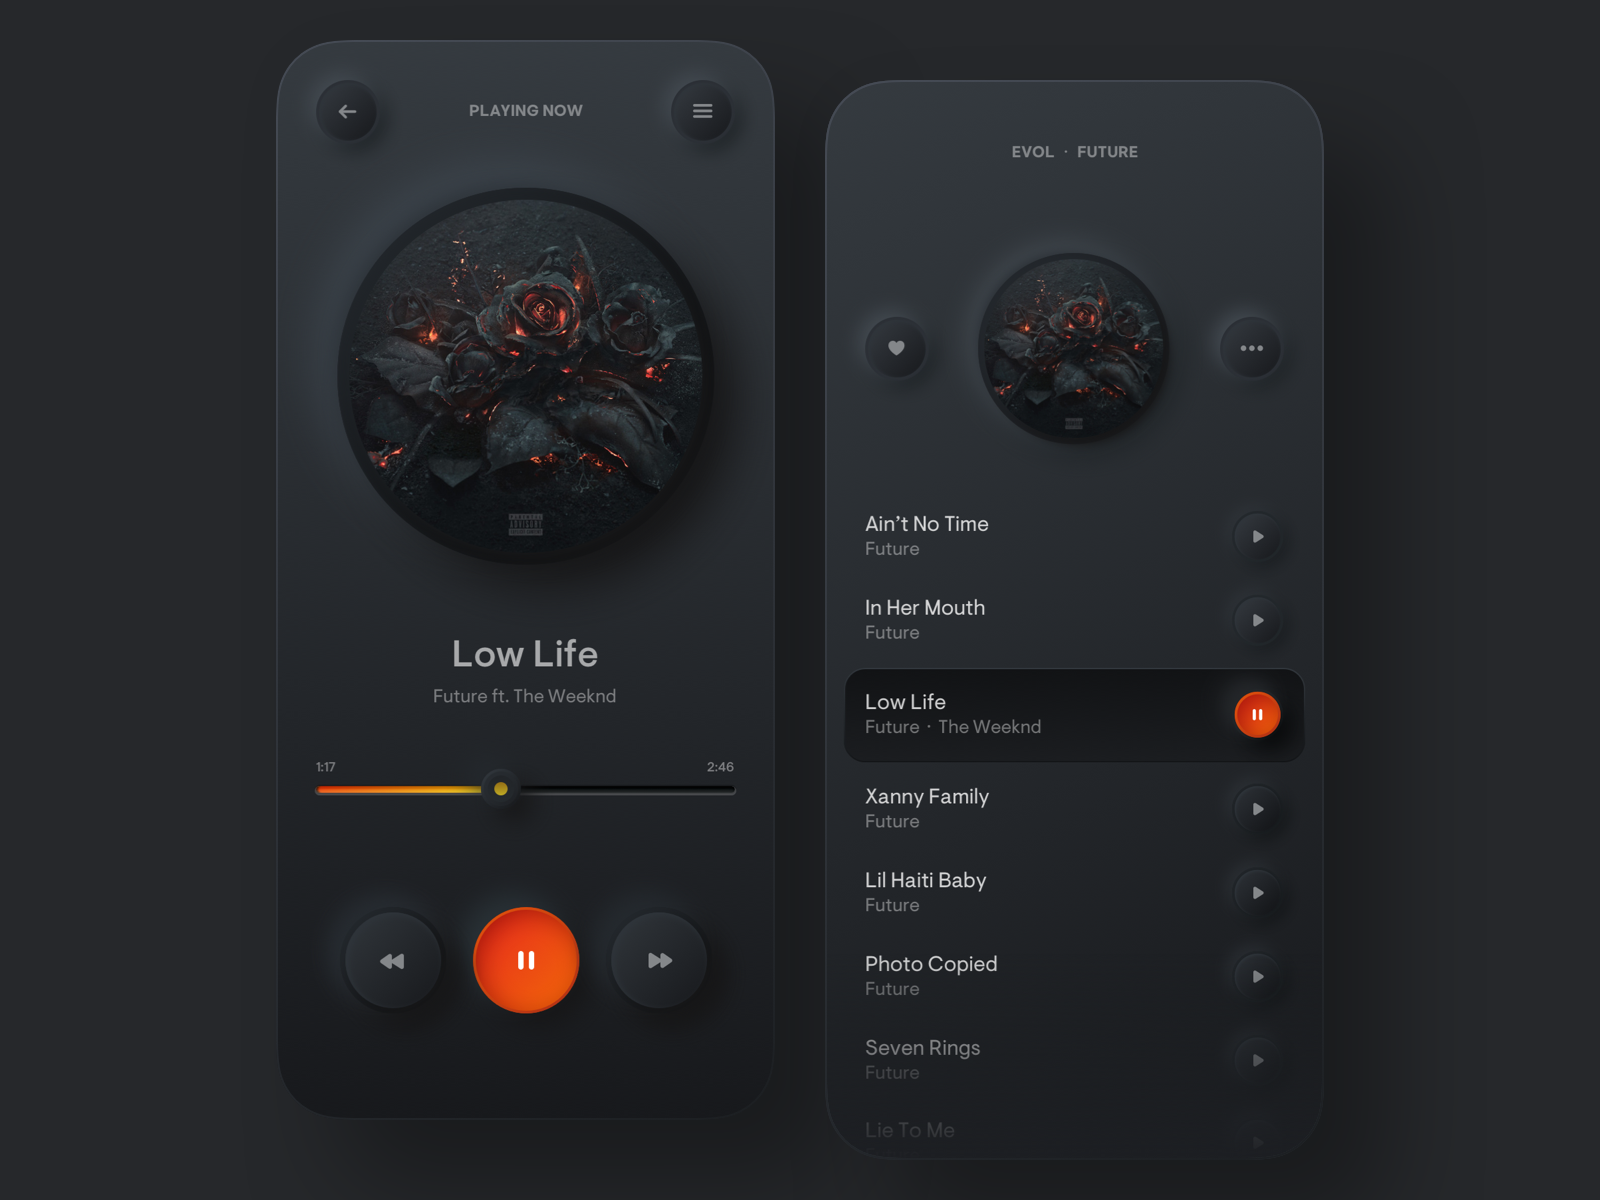 SIMPLE MUSIC PLAYER BY FILIP LEGIERSKI FOR RIOTTERS